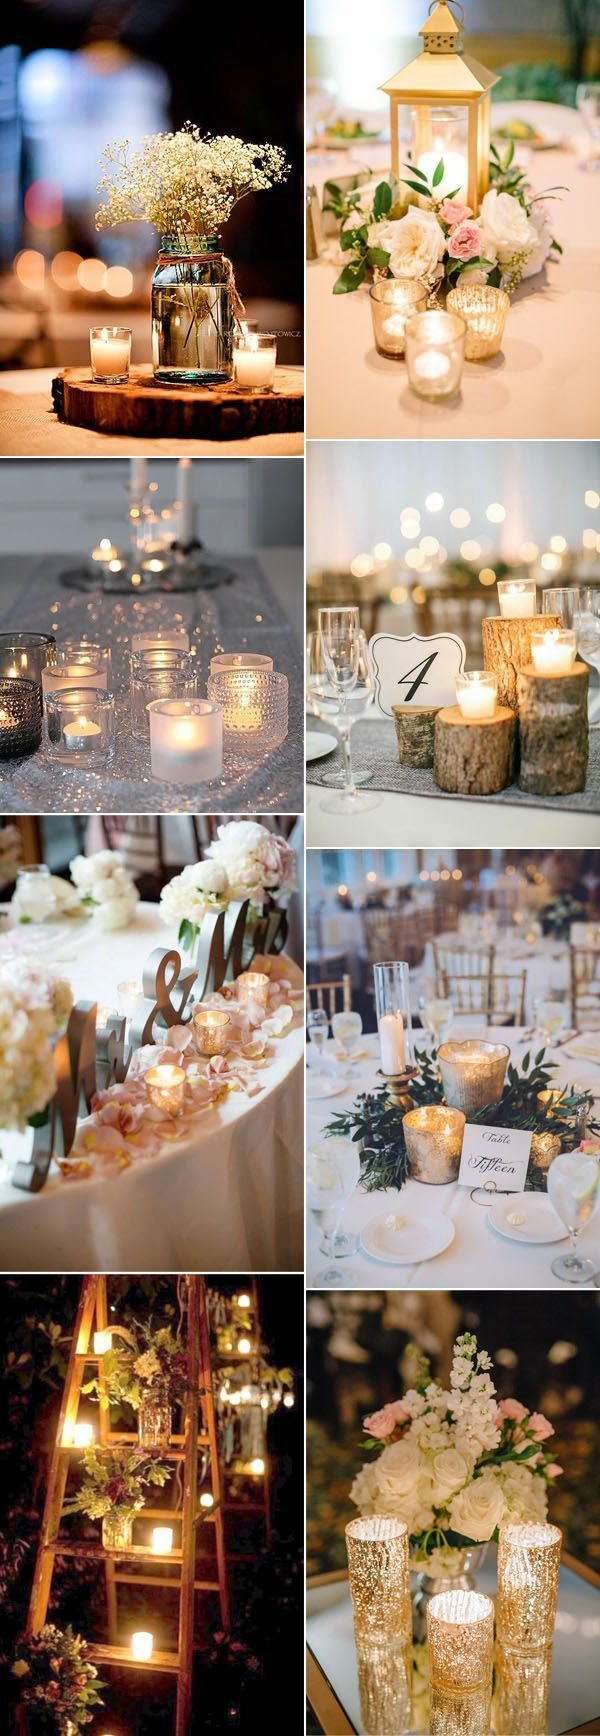 Romantic floating candle light wedding decor ideas. #wedding #light #hochzeit #deko